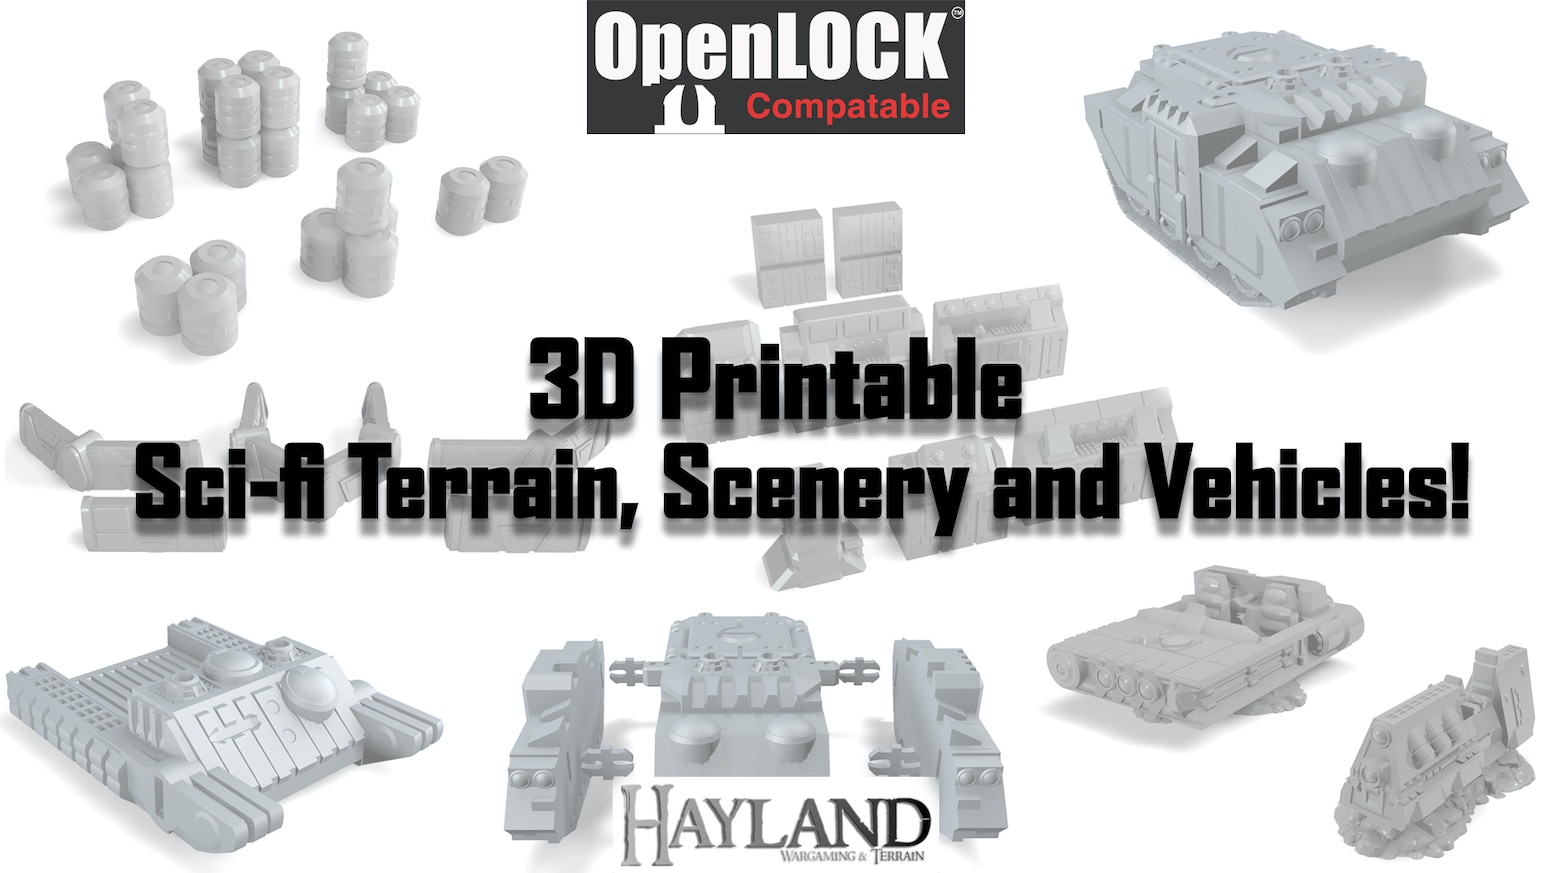 3D Printable Sci-fi Terrain, Scenery and Vehicles! - OpenLOCK - STL Files - Small Printbed Friendly!  Only £15/$20!